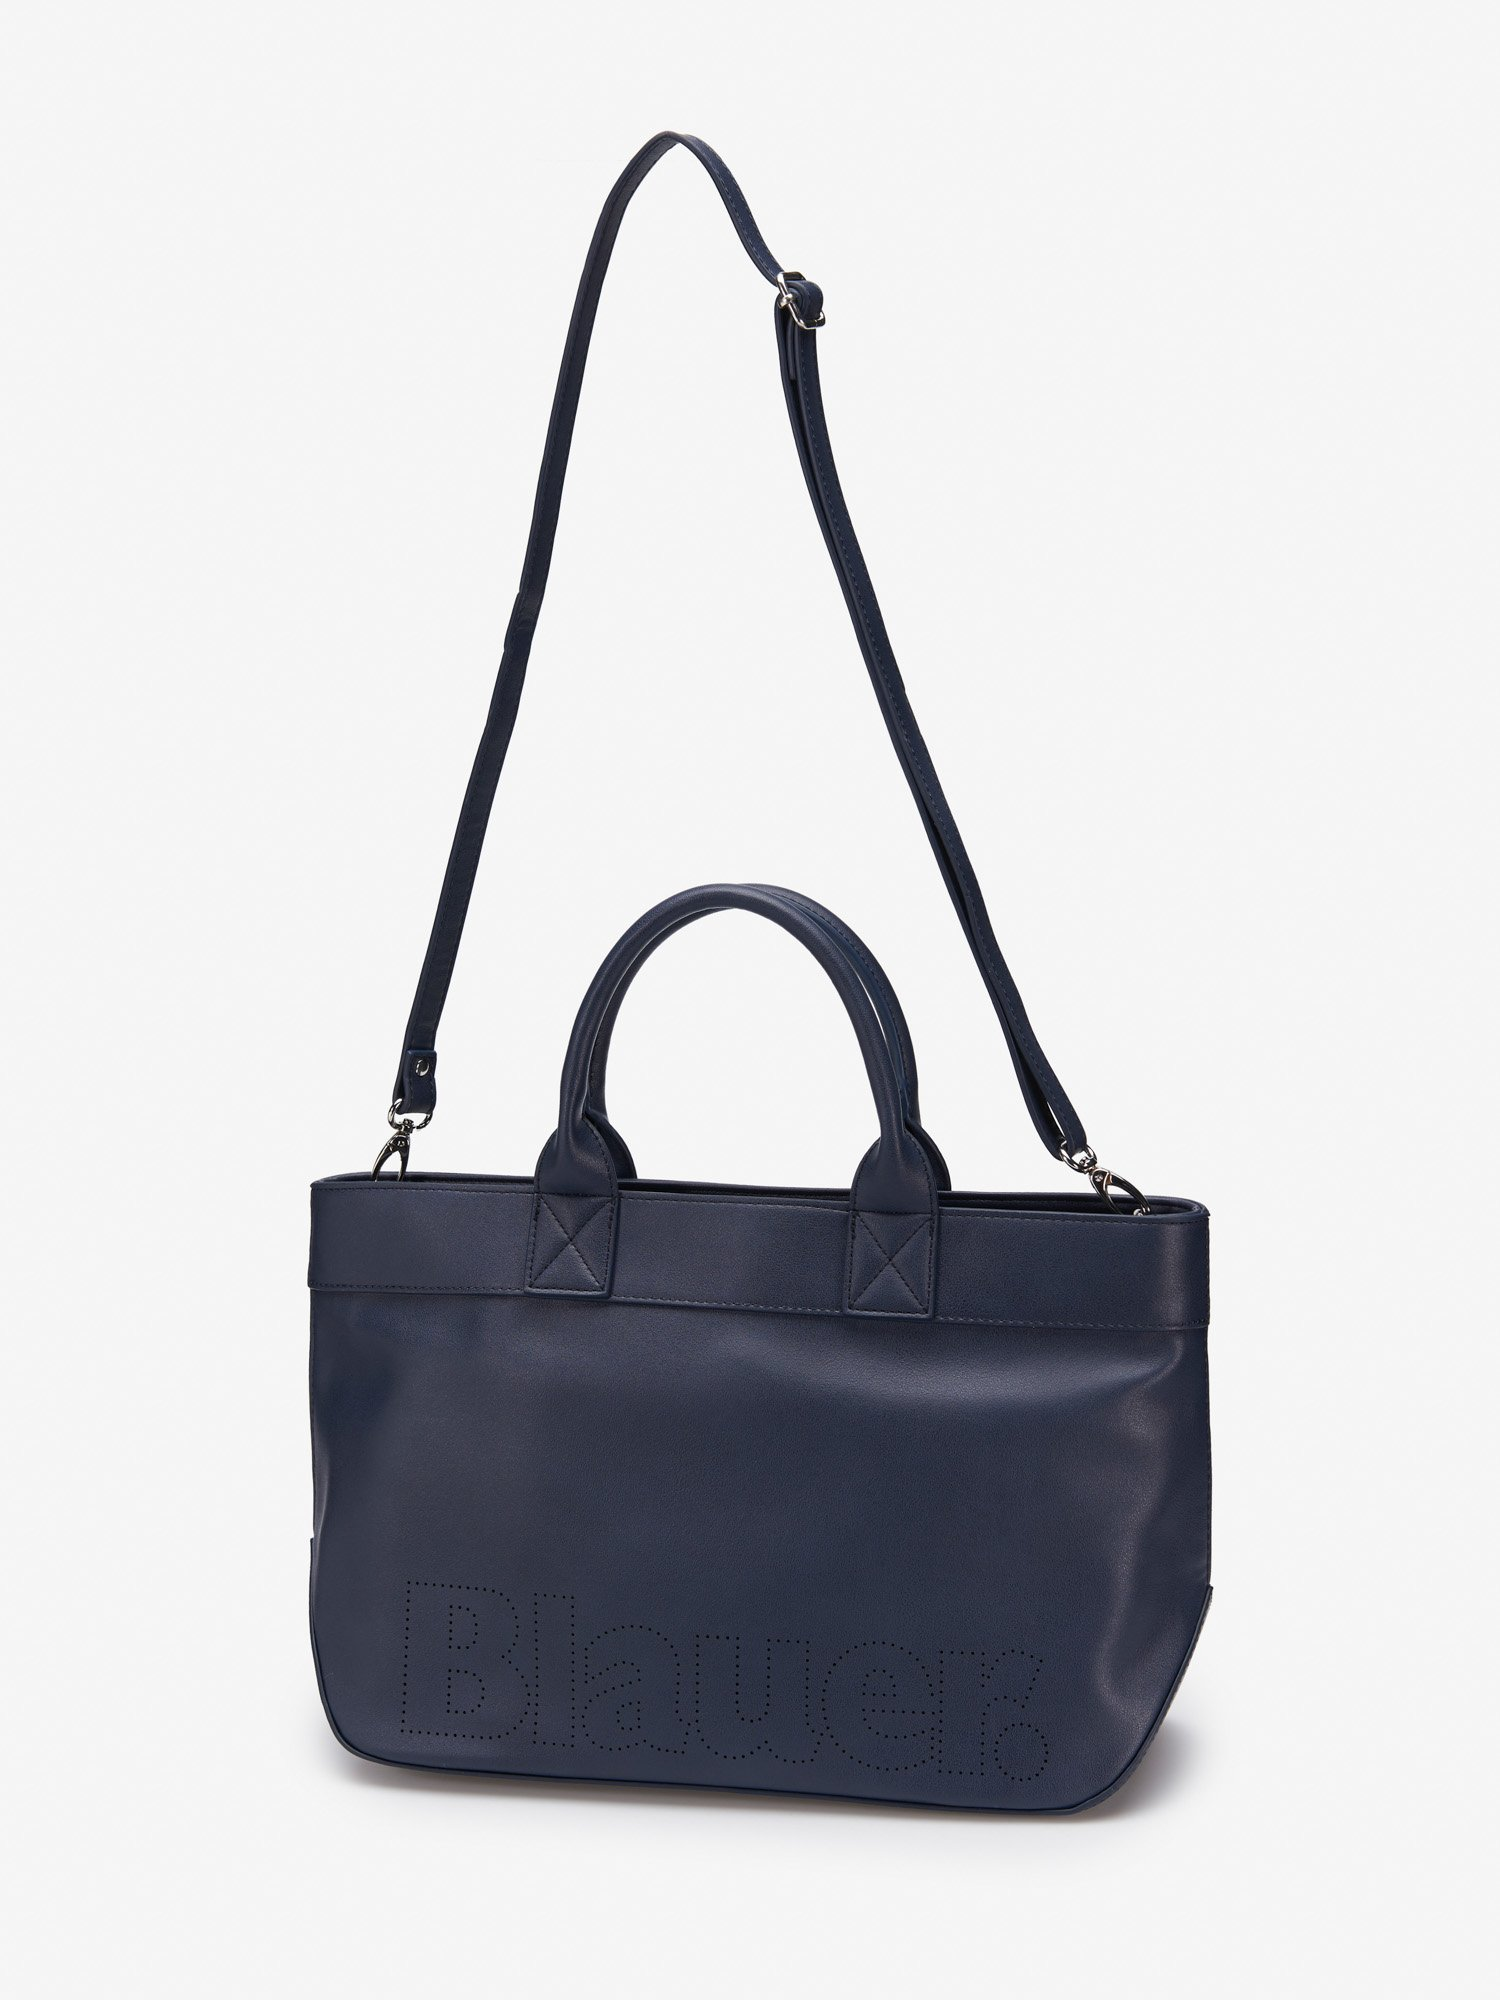 SHOPPER LARGE LEATHER TOTE - Blauer